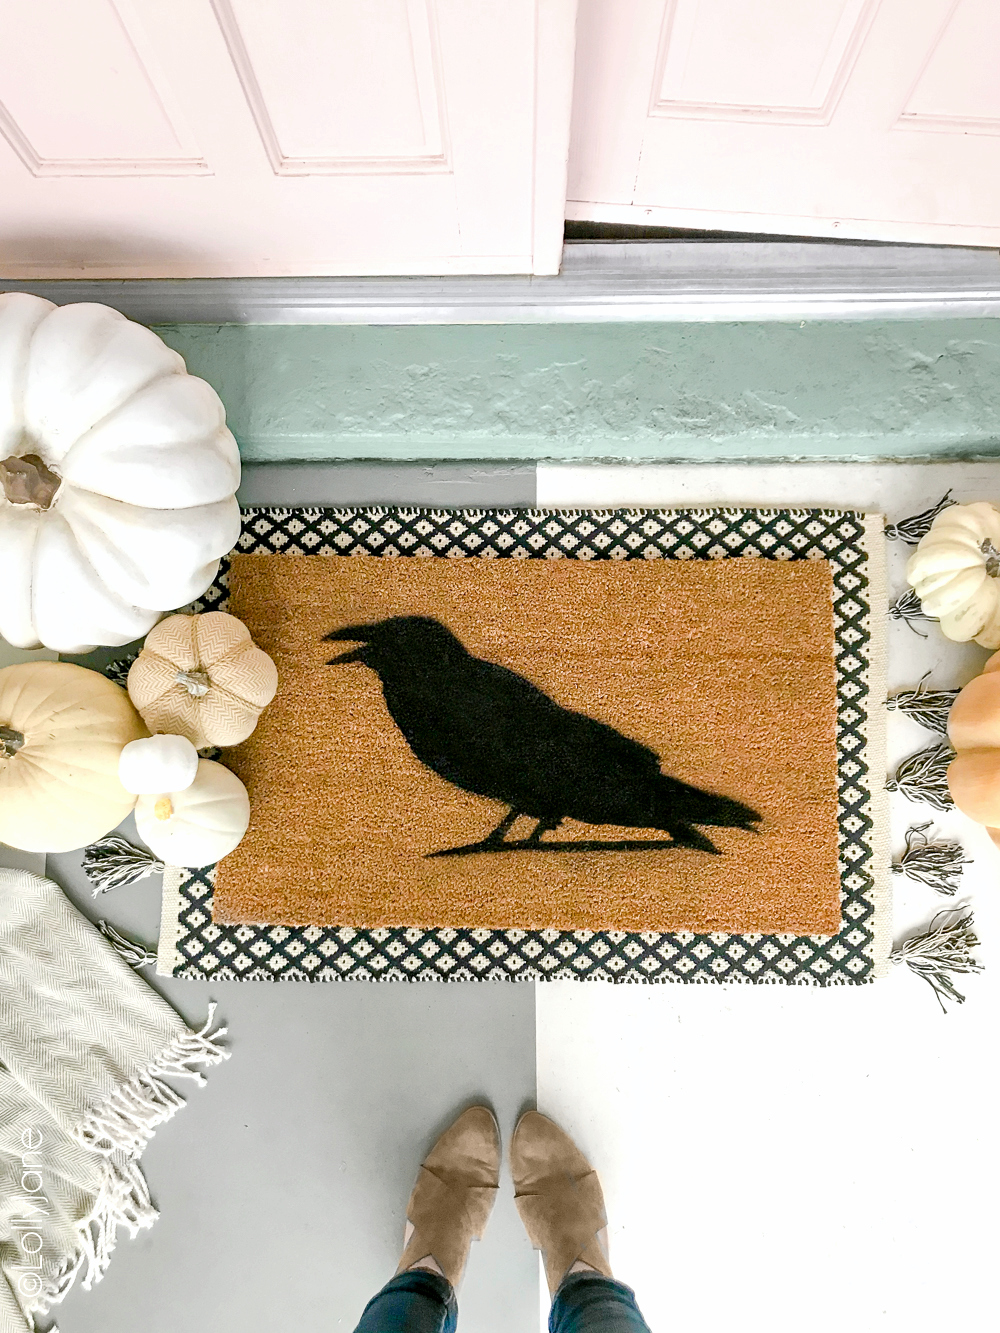 Super cute DIY Halloween Doormat... EASY to make in just minutes and for under $15! Great addition to welcome your spooky guests or trick-or-treaters! Click picture for the full tutorial at LollyJane.com! #diy #halloweendecor #diydoormat #halloweendecor #crow #halloweendiy